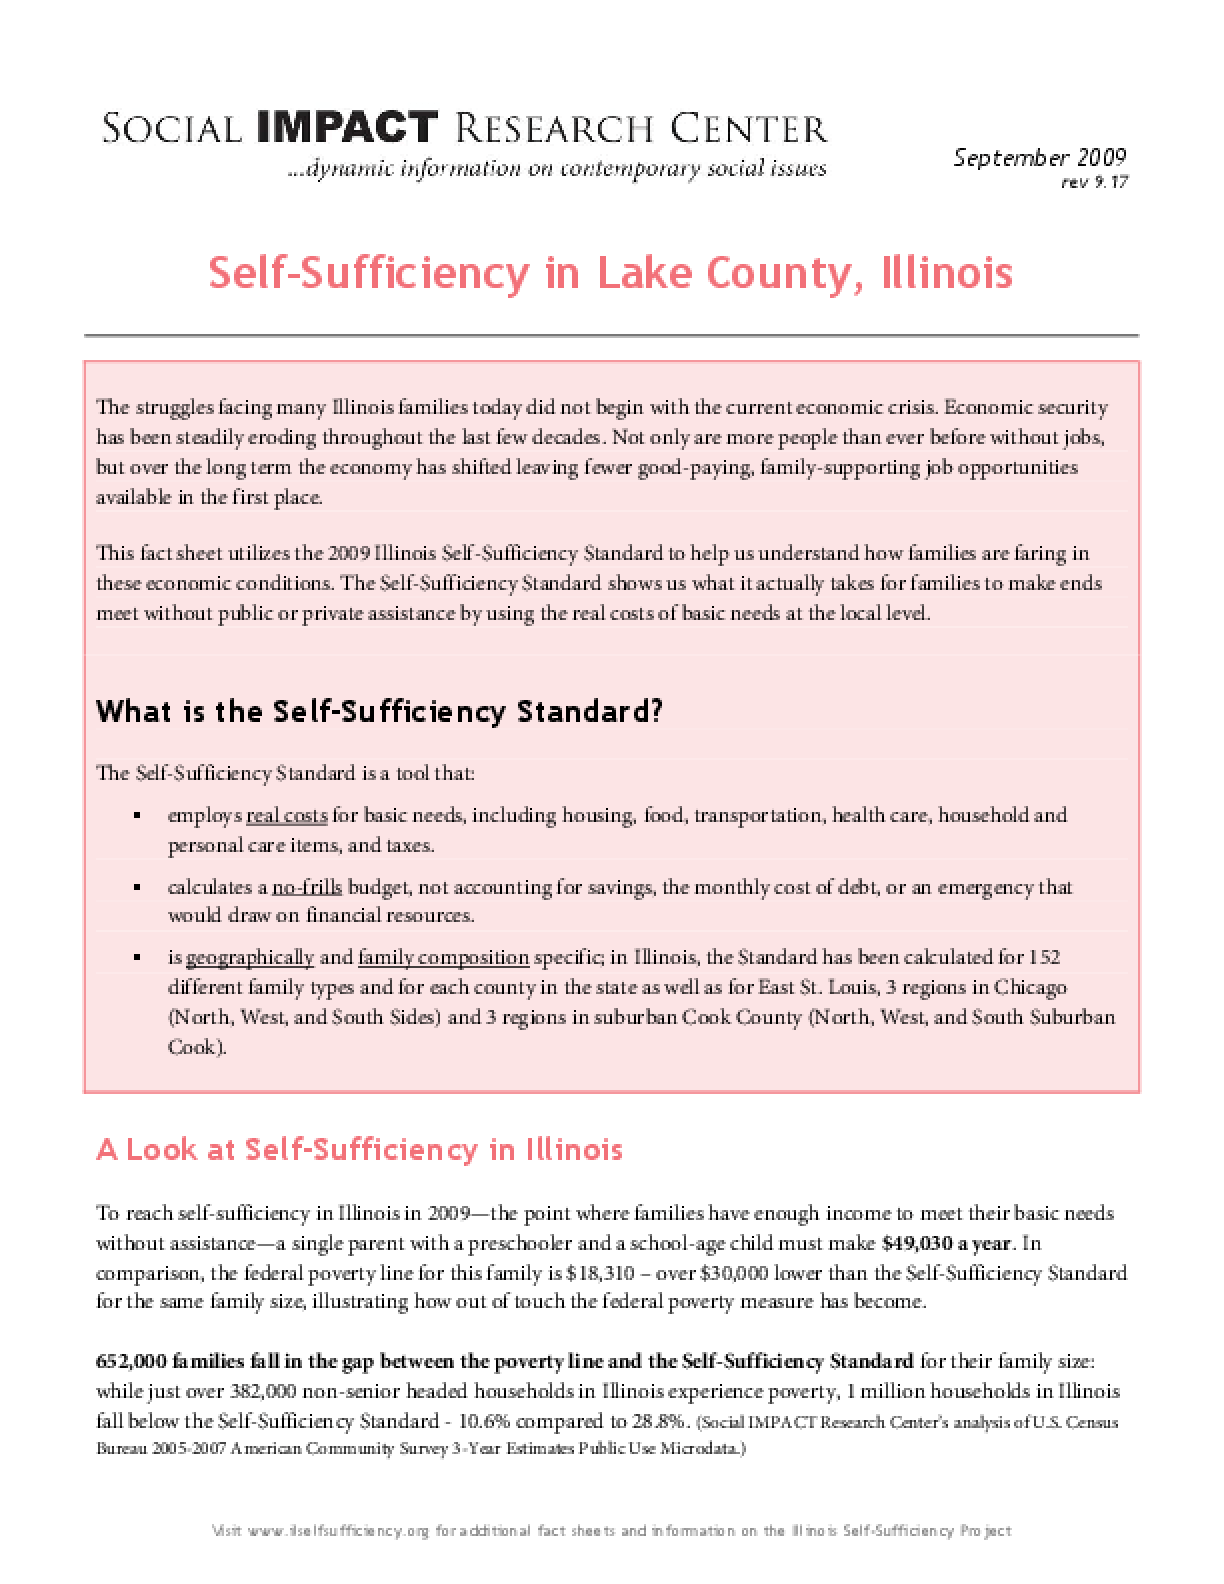 Self-Sufficiency in Lake County, Illinois